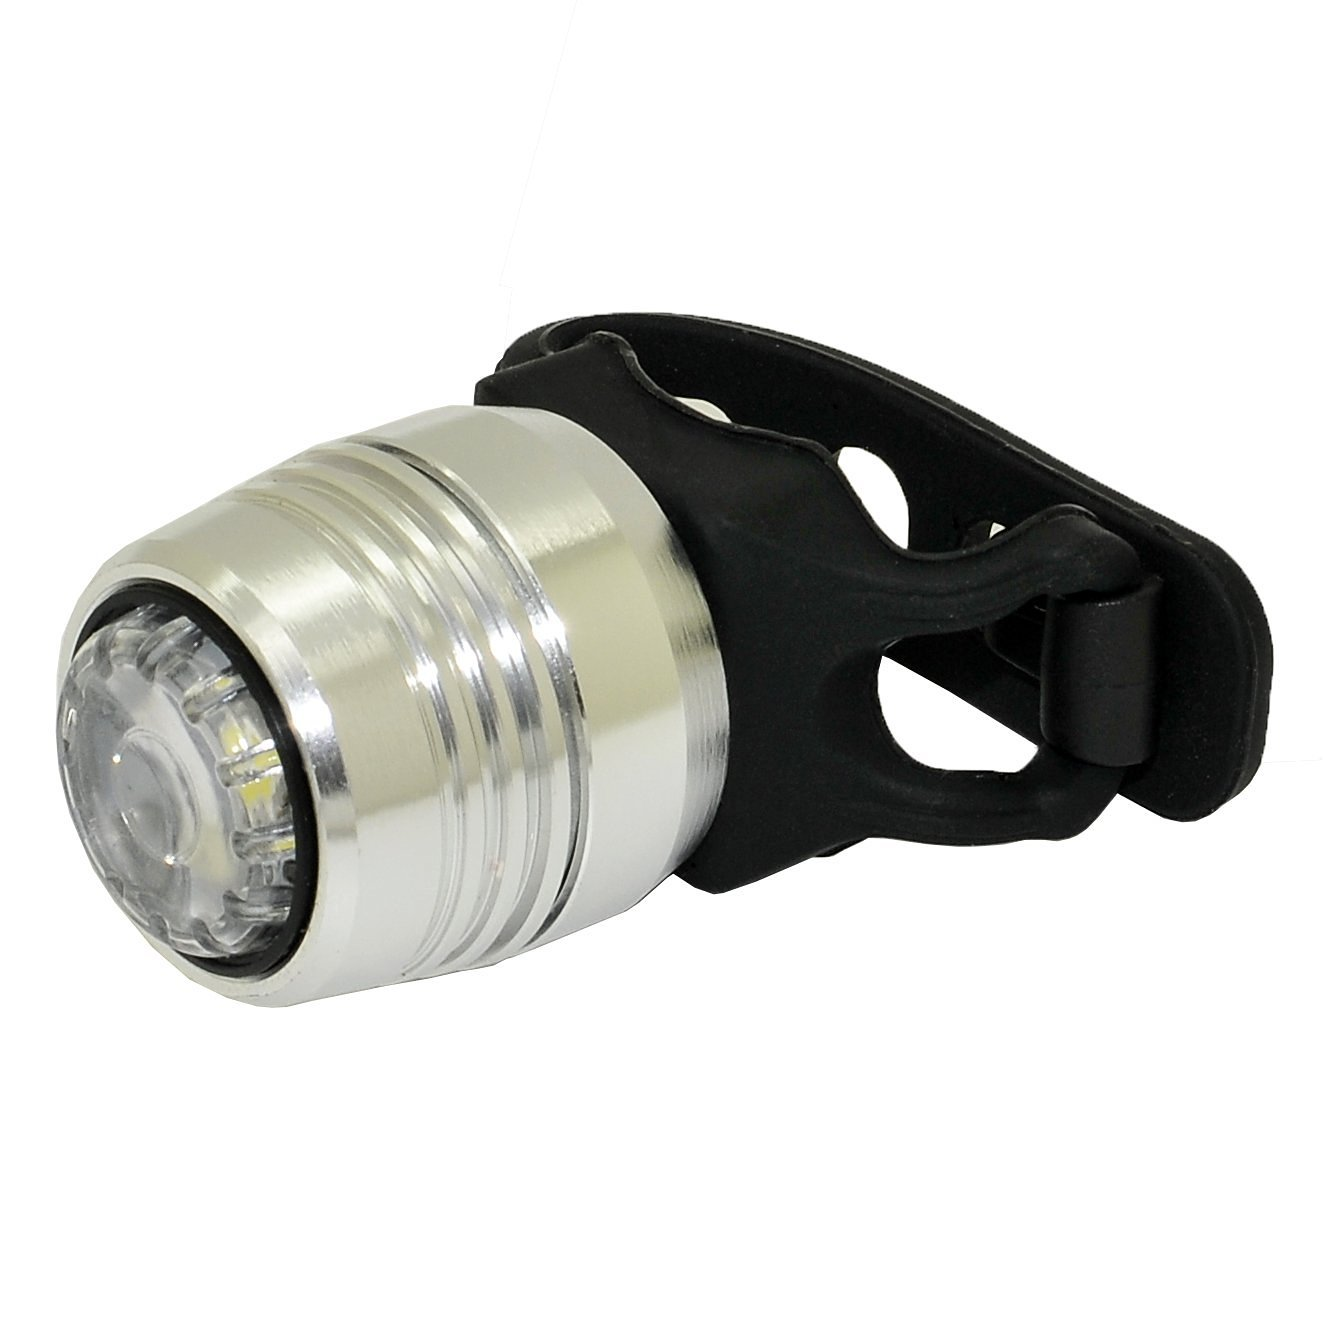 Low Cost Aokay Bright Bike Helmets Safety Led Light 4 Modes